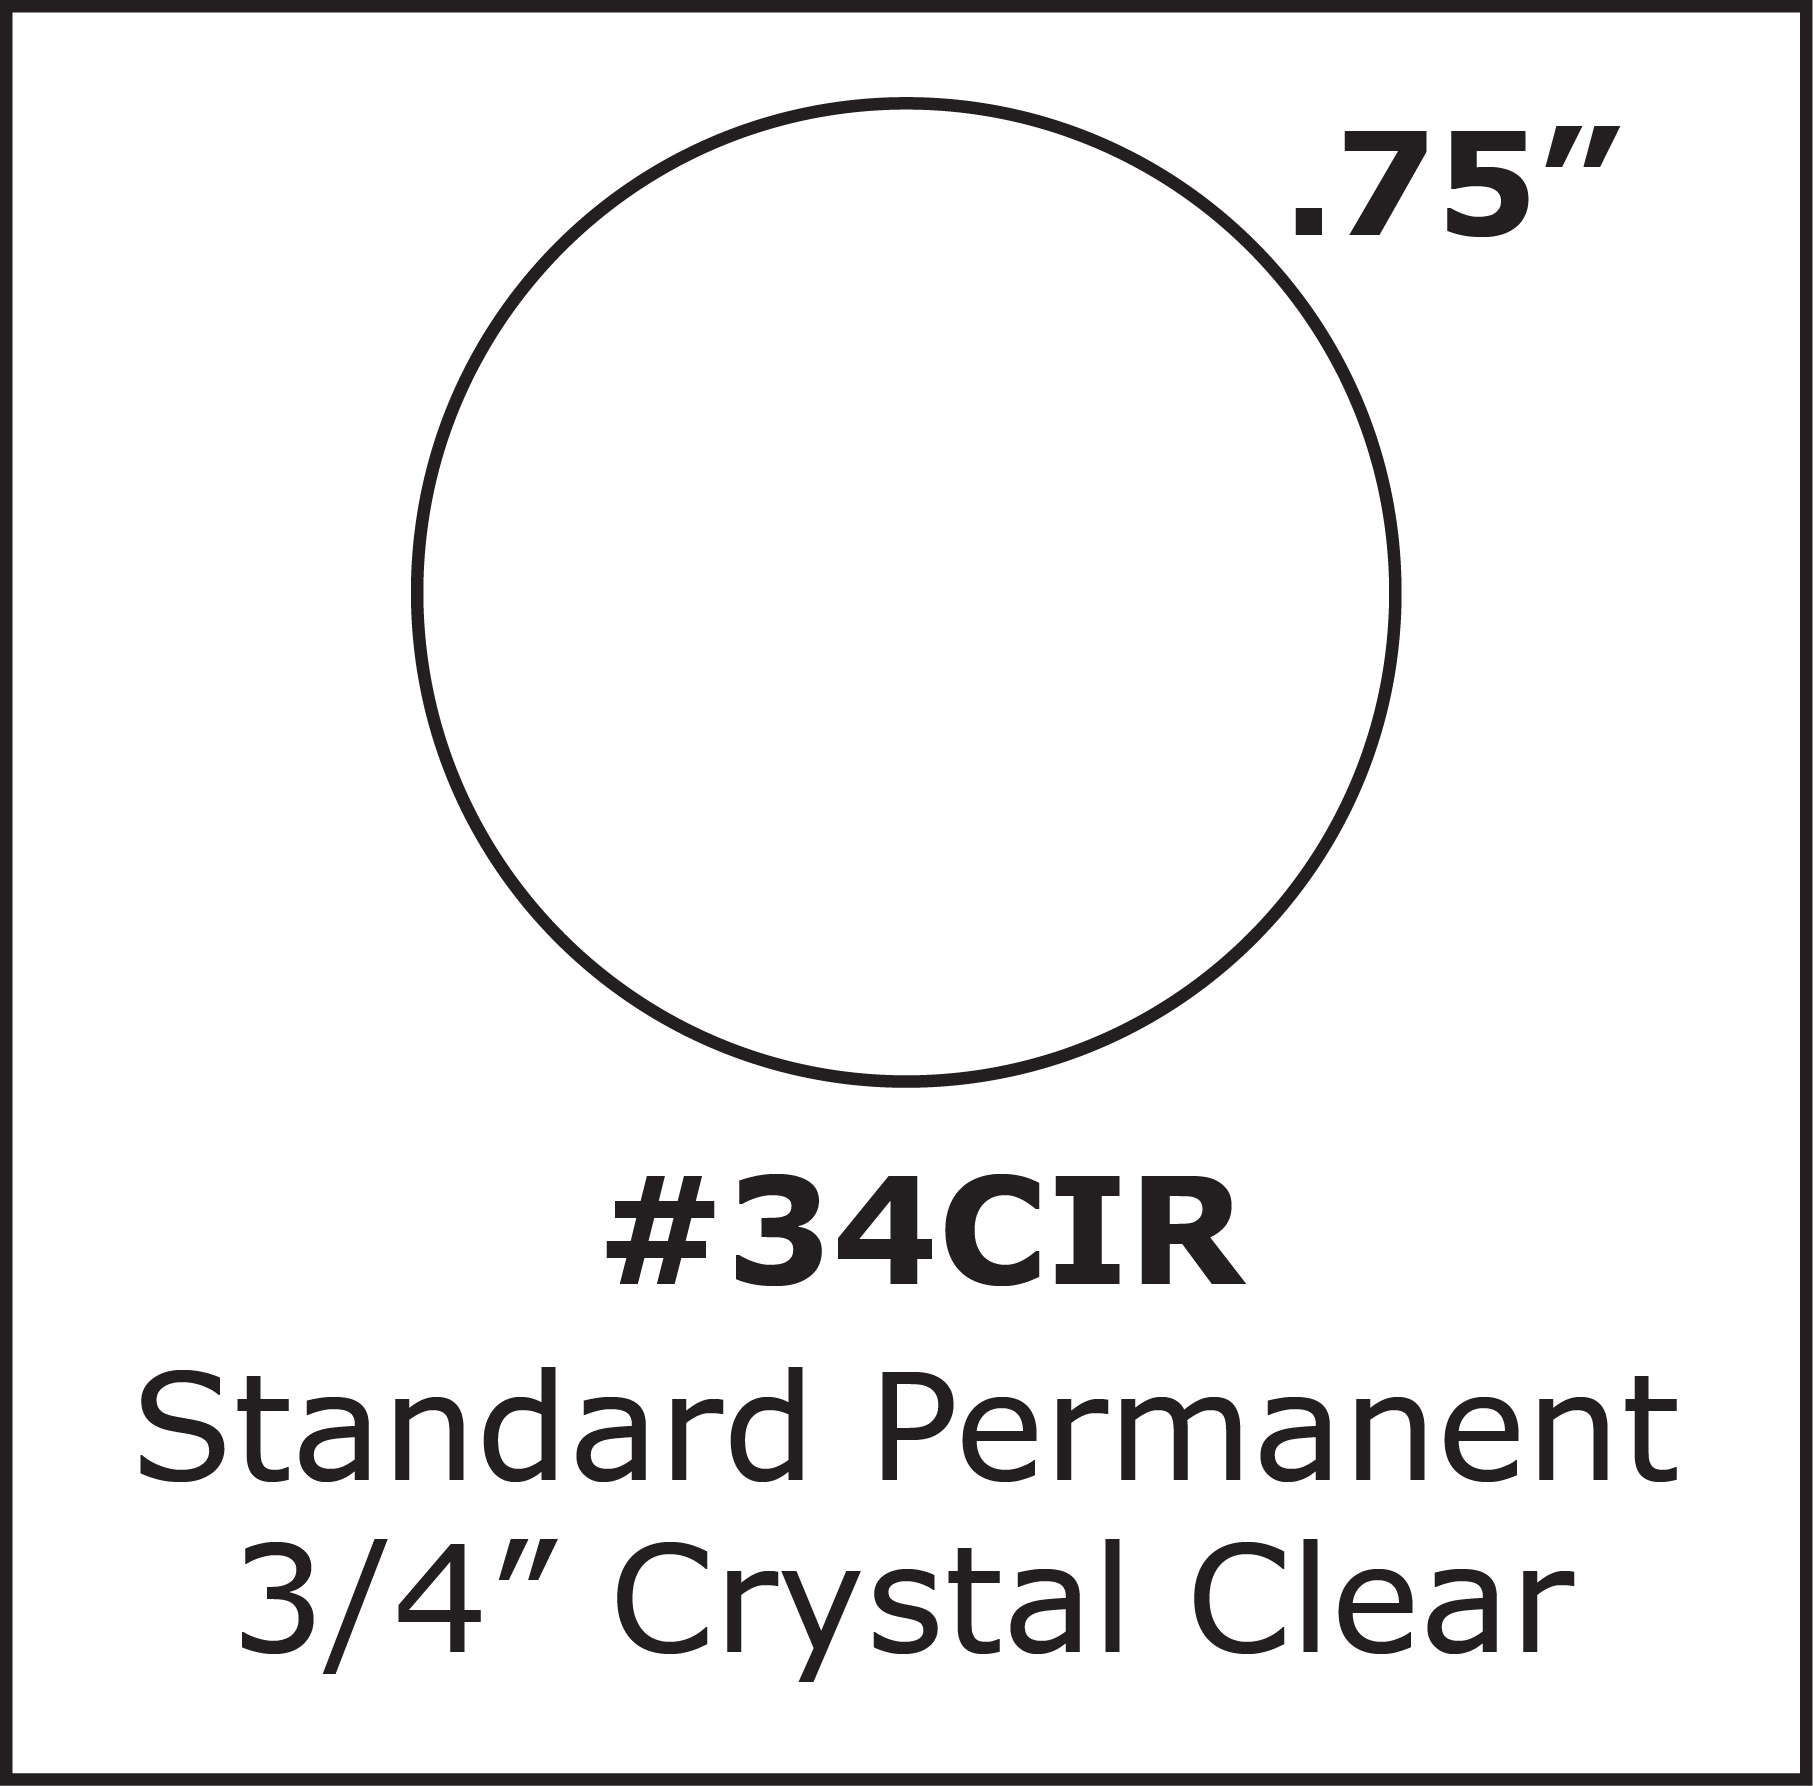 75 inch 3 4 inch round clear seal label sticker 500 roll 34cir